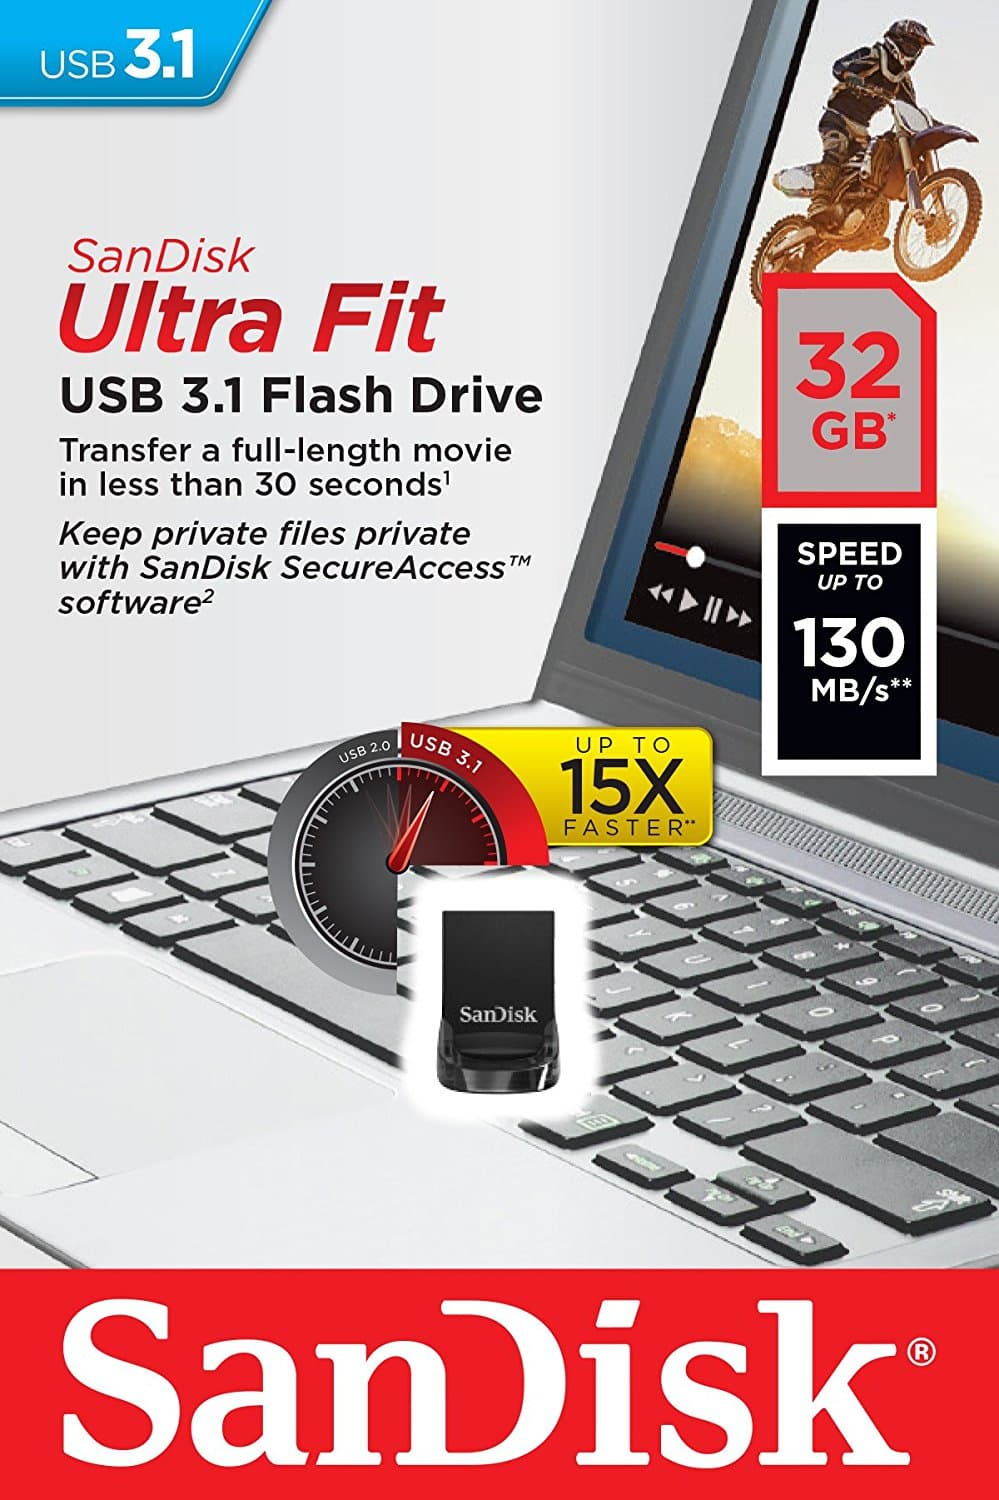 Sandisk Cruzer Ultra Fit CZ430 32GB USB 3.1